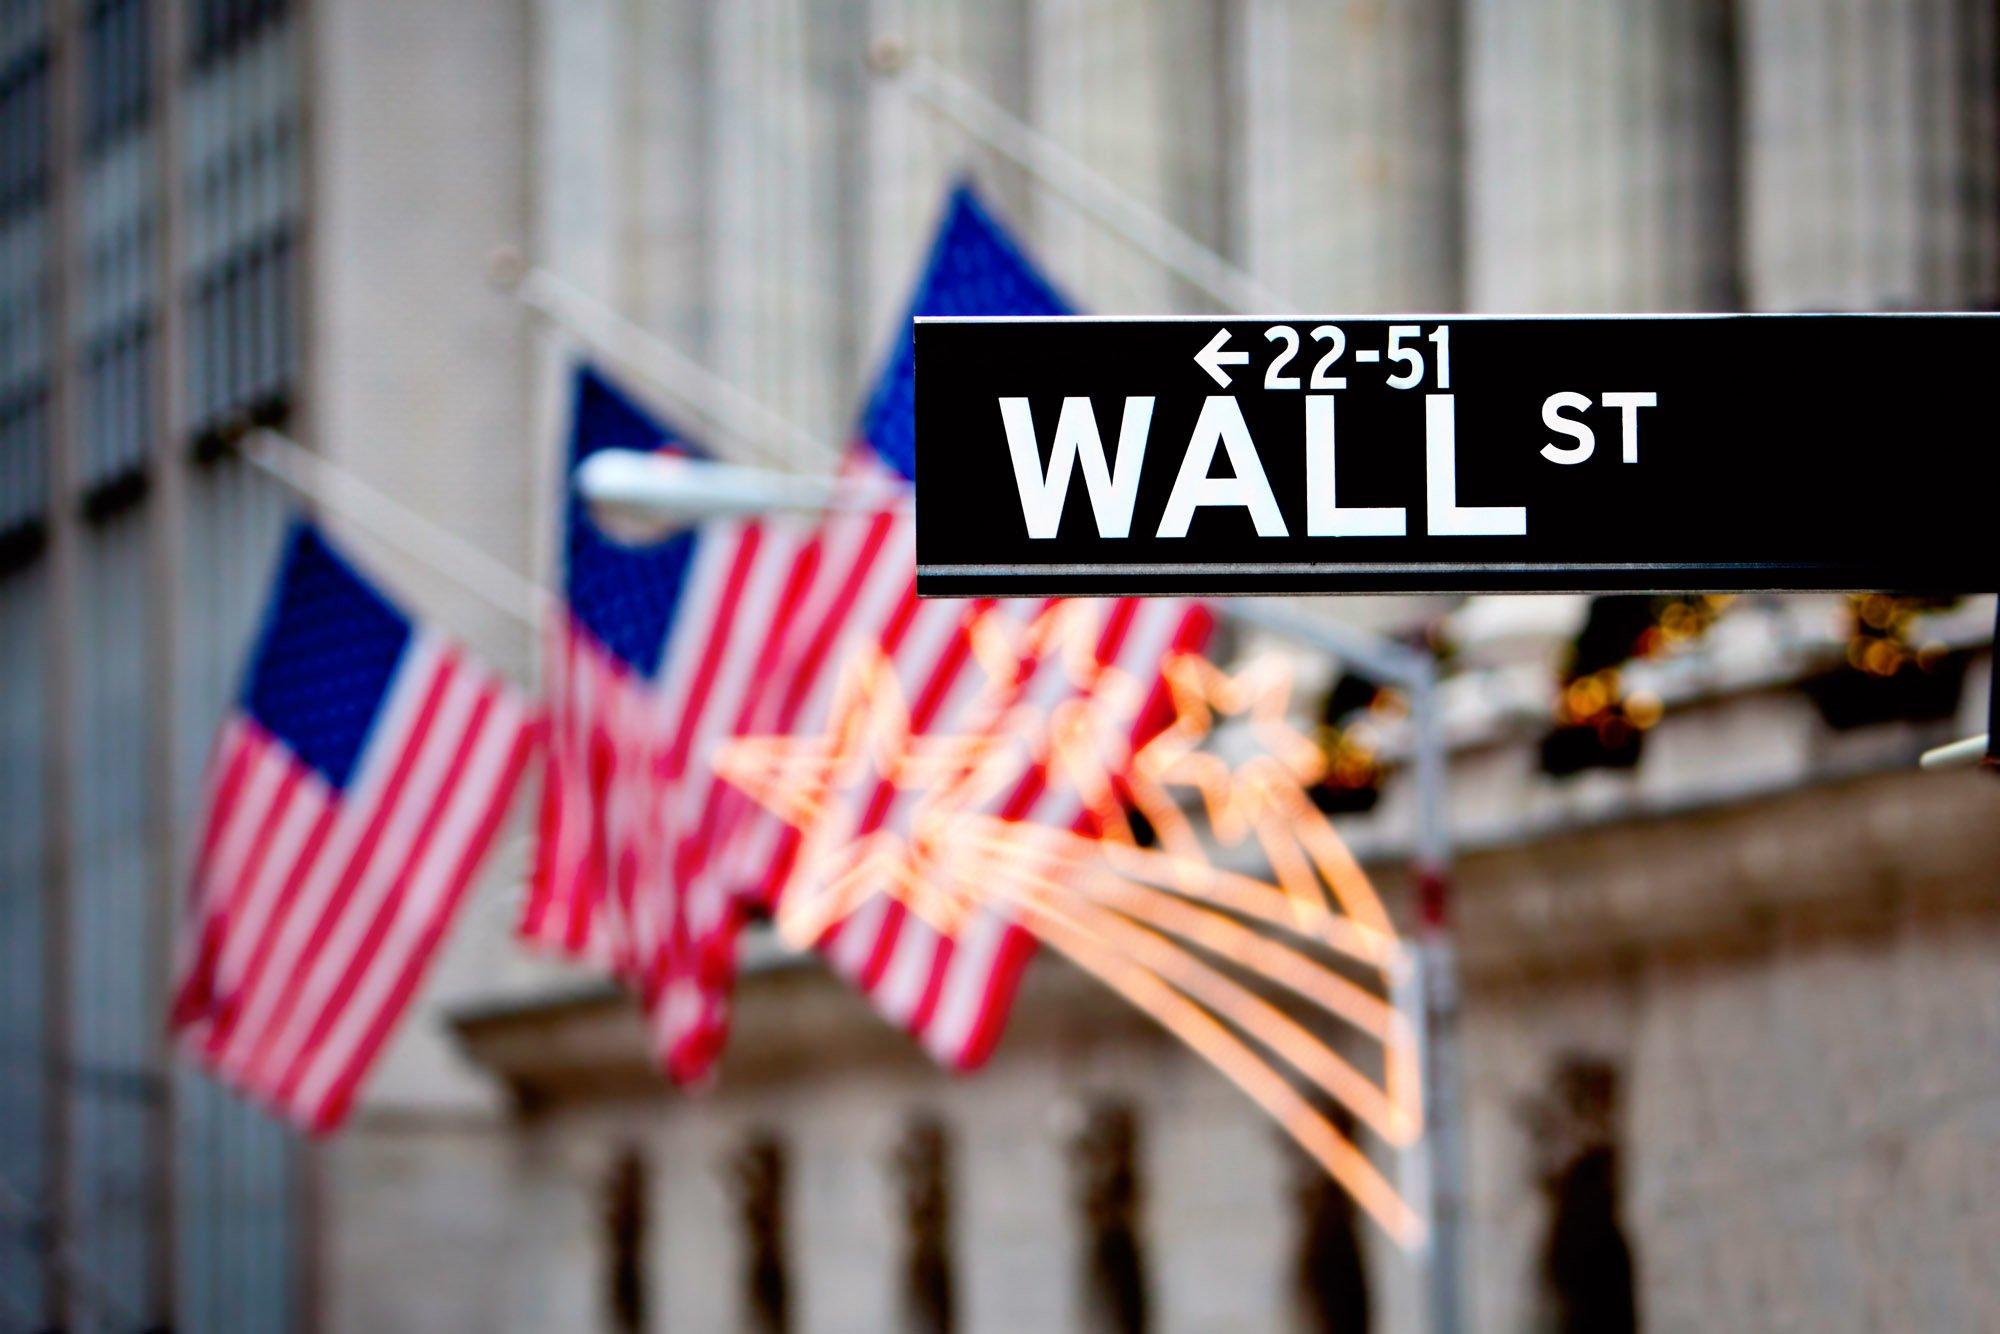 Impending Earnings News May Lead to Choppy Trading